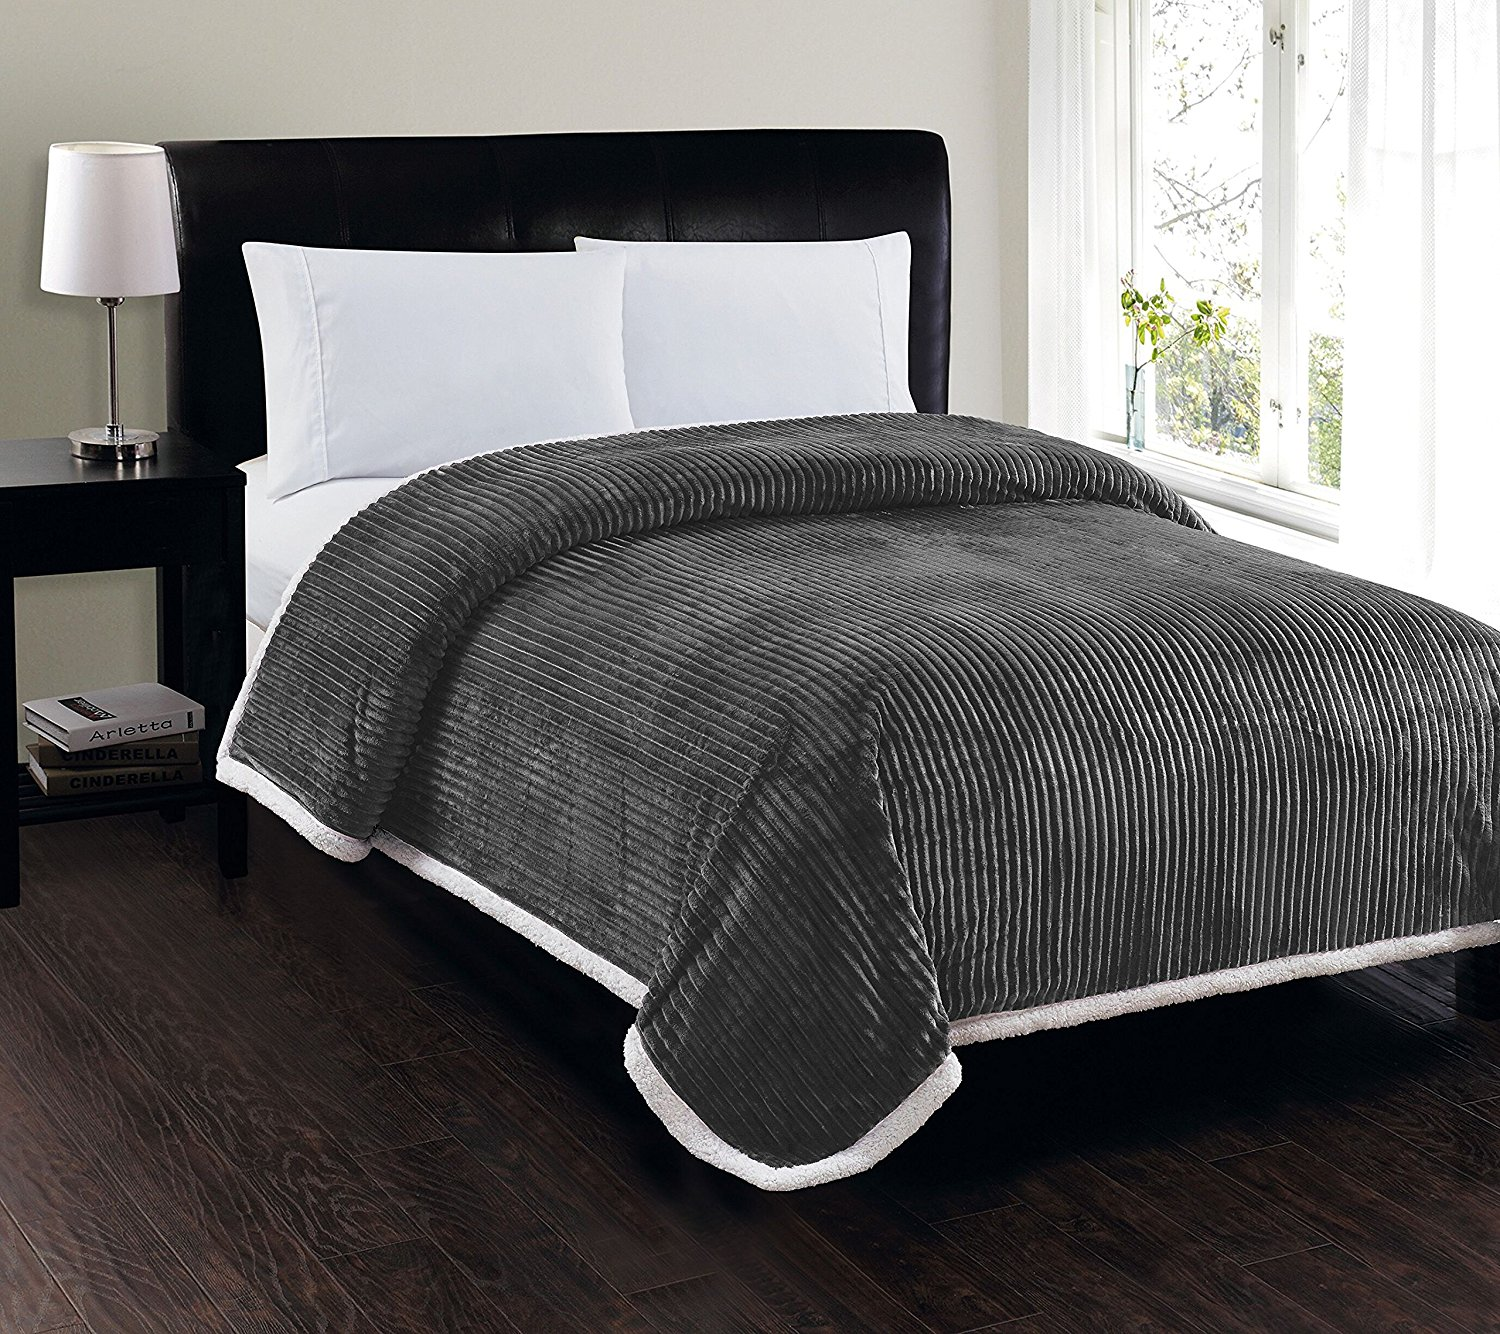 queen bed blanket Soft Plush Reversible Corduroy / Sherpa Lined Oversized Bed  queen bed blanket